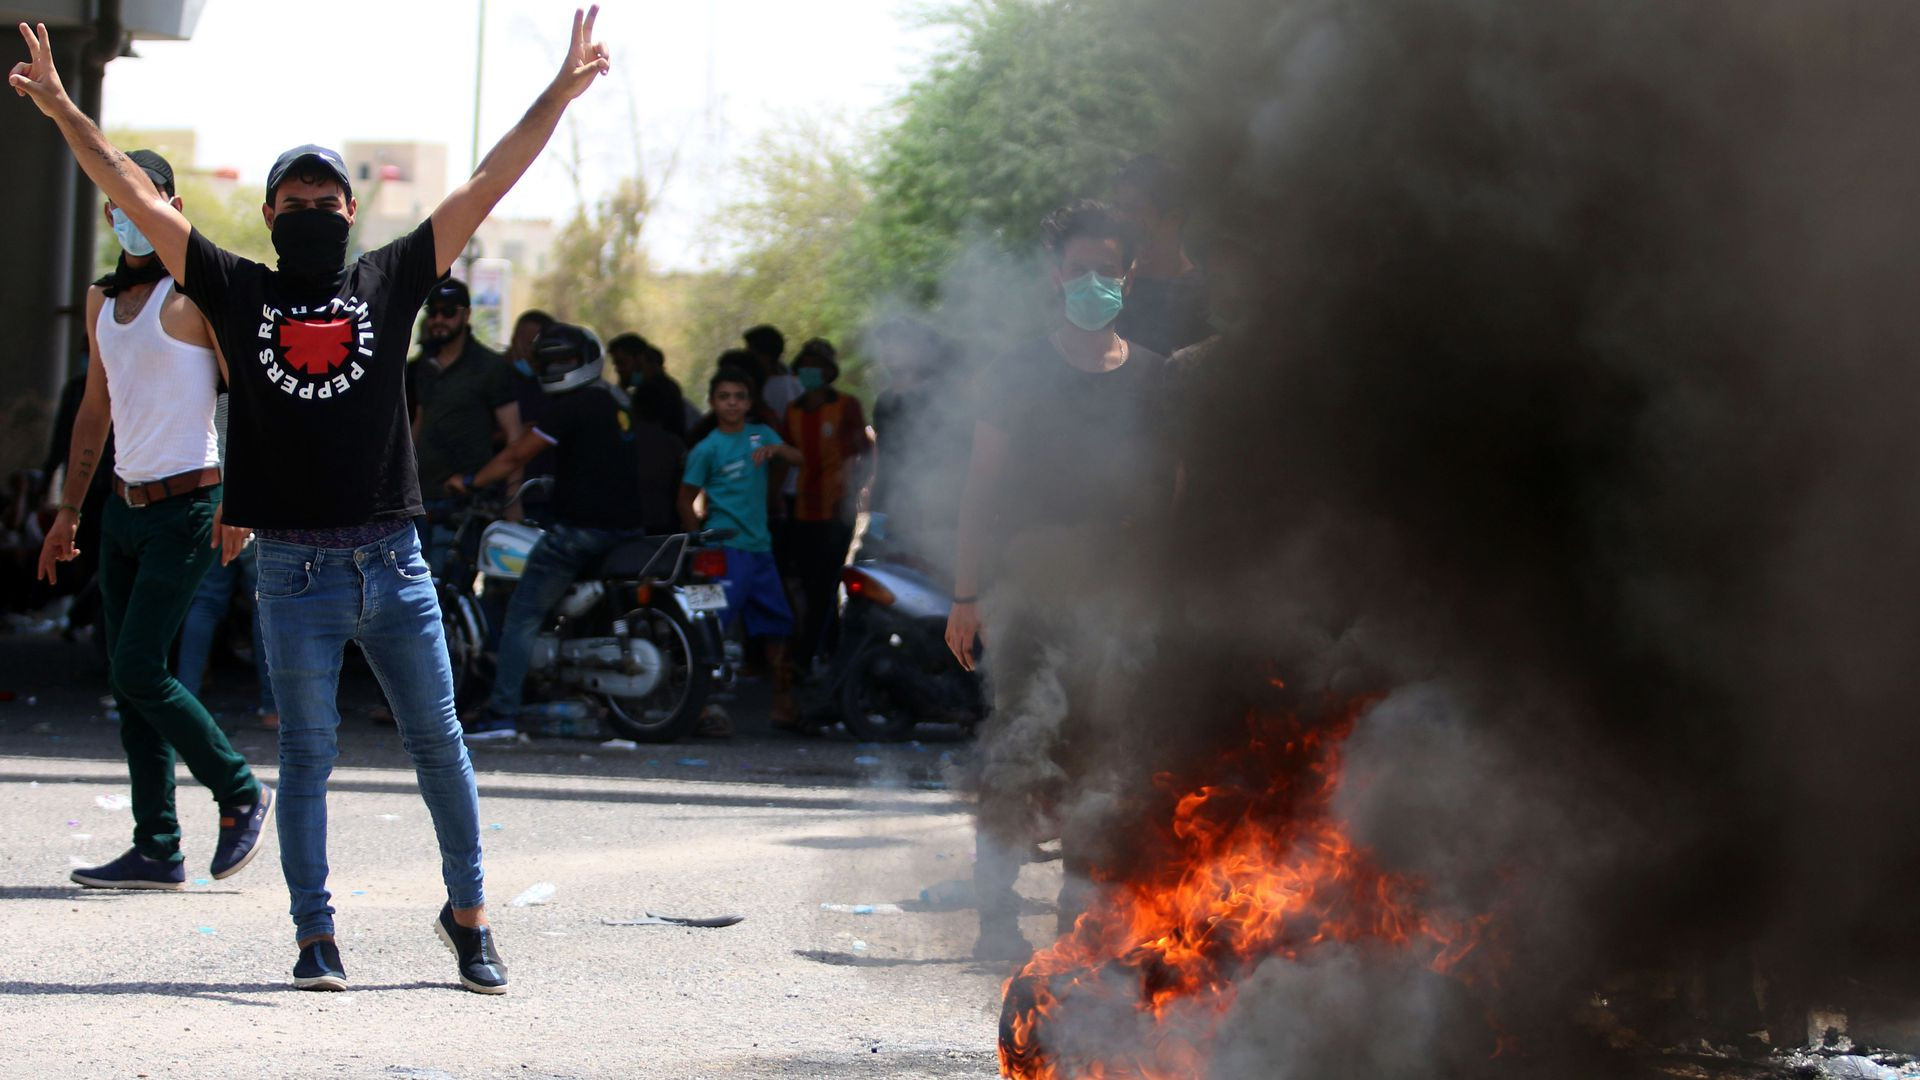 A protestor stands next to a burning tire, with his hands raised gesturing the peace sign.